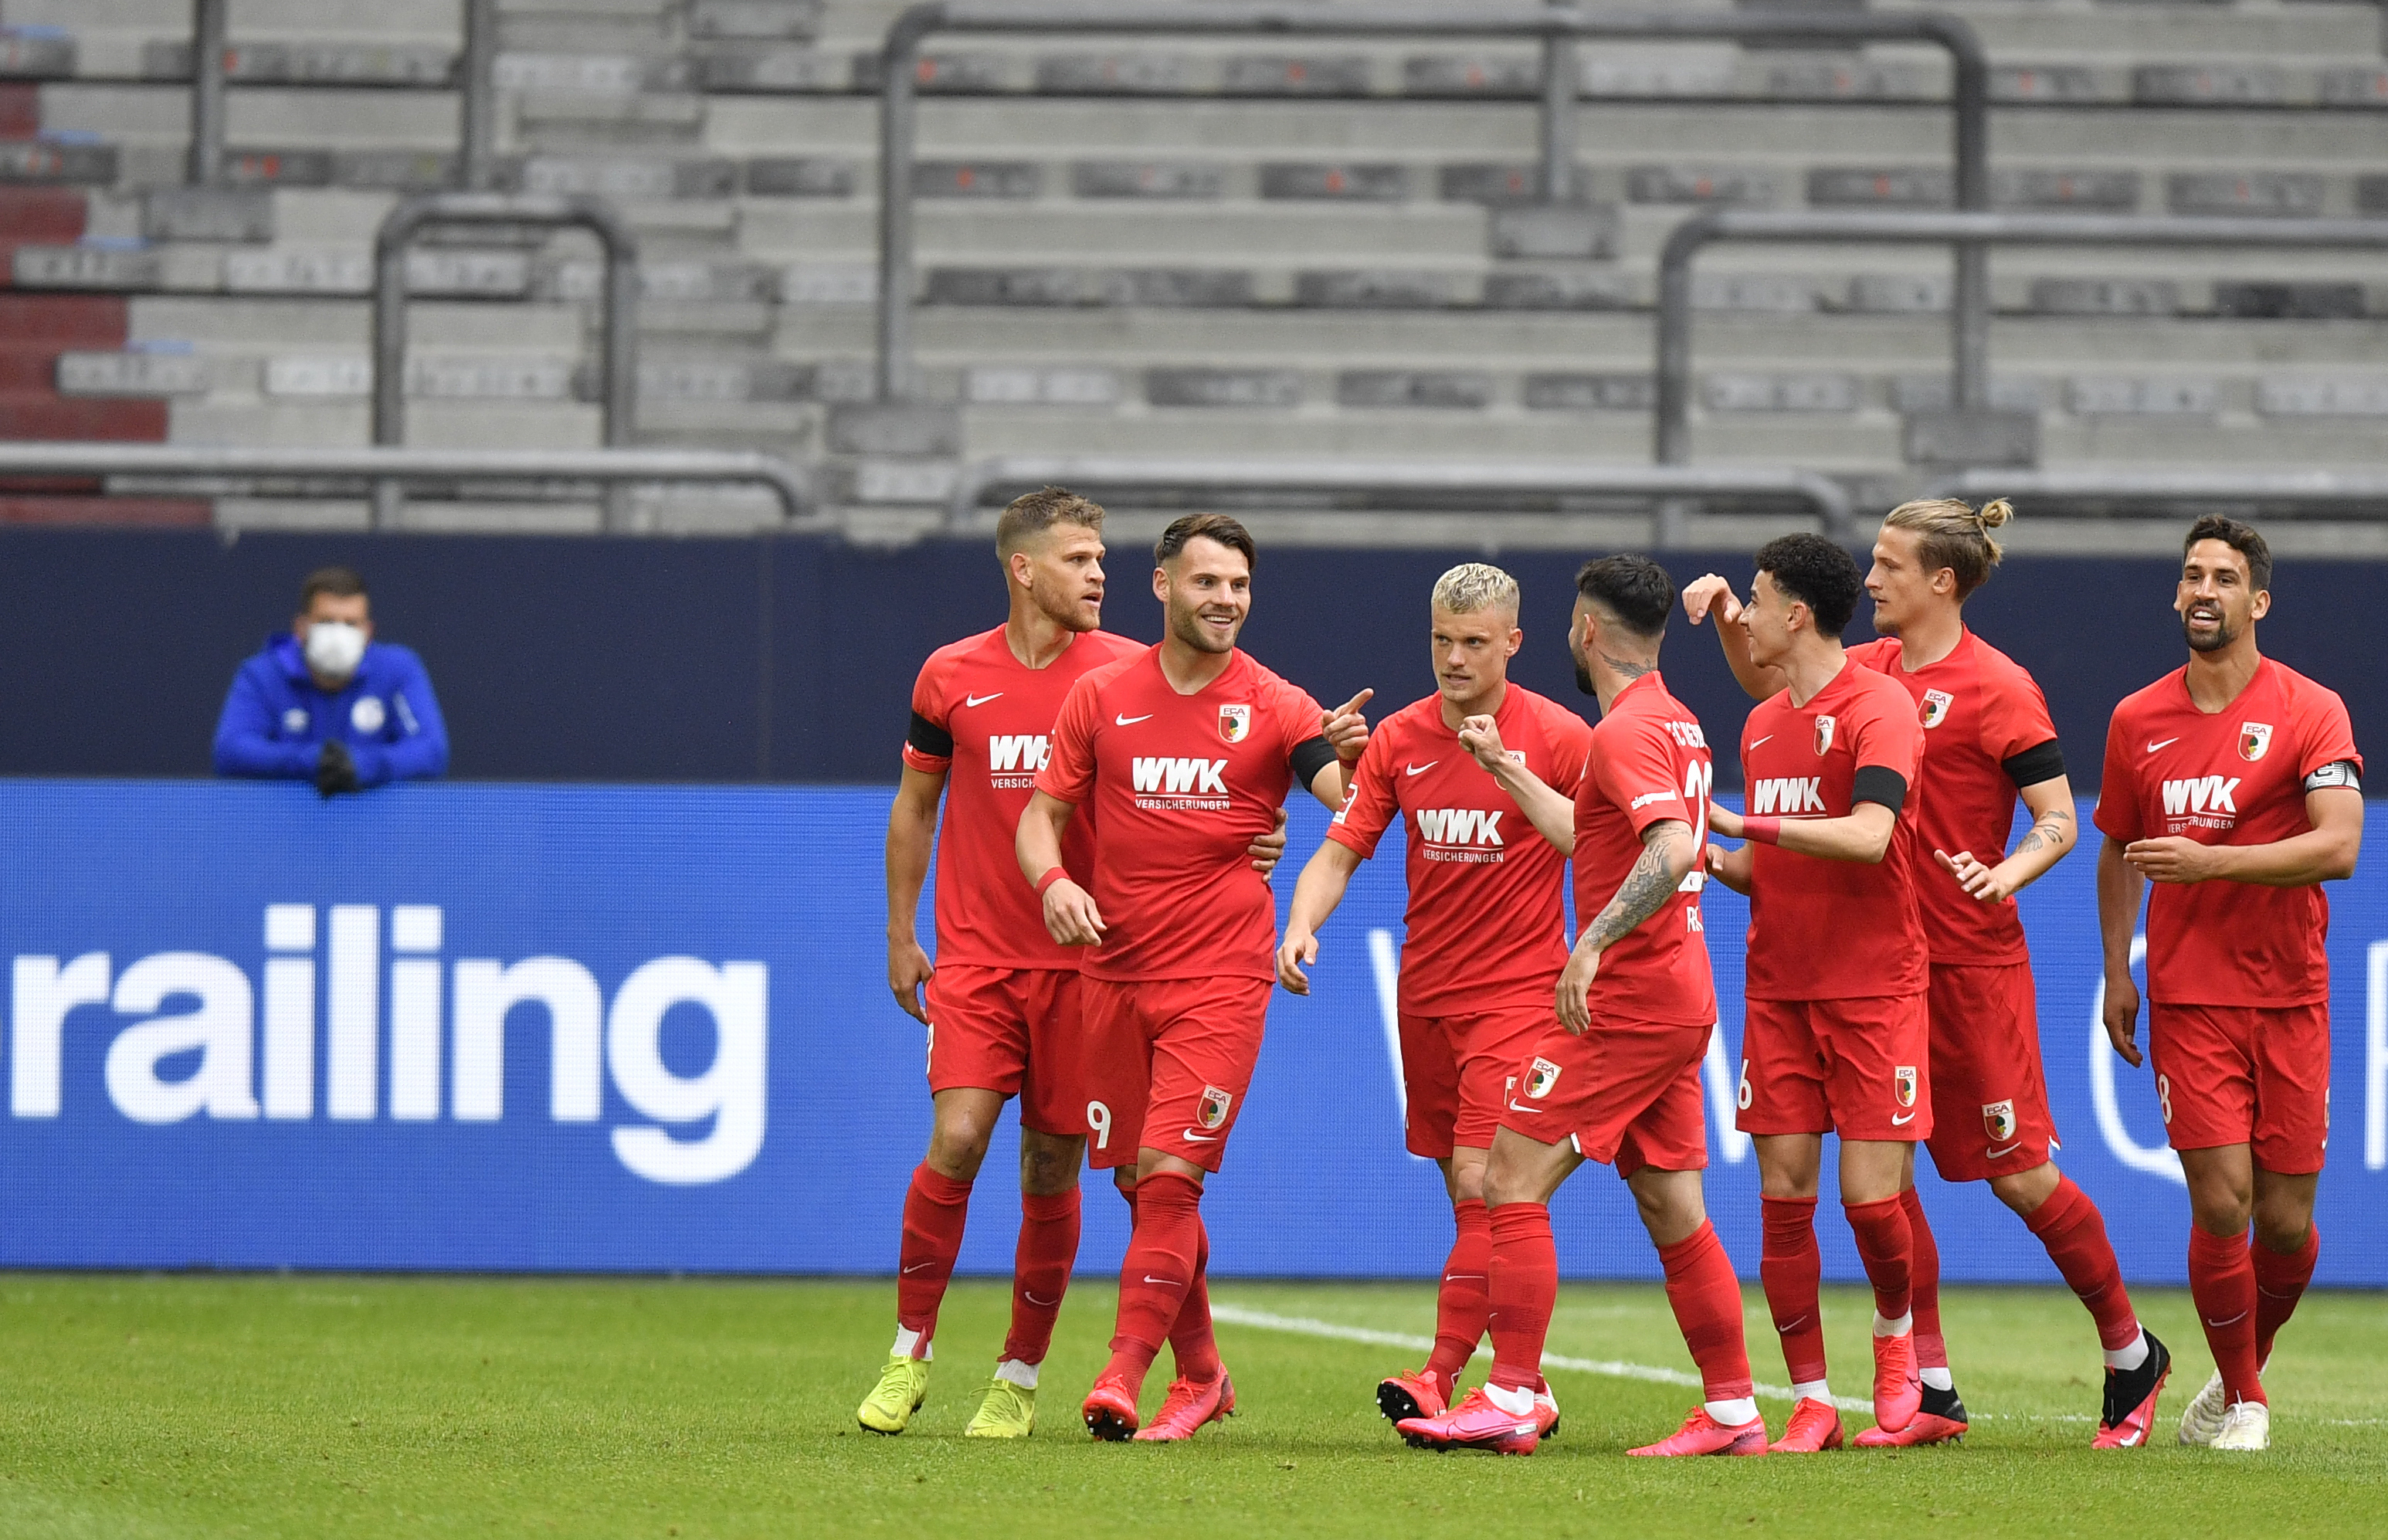 Augsburg's Eduard Loewen celebrates with teammates after scoring his side's opening goal during the German Bundesliga soccer match between FC Schalke 04 and FC Augsburg at the Veltins-Arena in Gelsenkirchen, Germany, Sunday, May 24, 2020. The German Bundesliga becomes the world's first major soccer league to resume after a two-month suspension because of the coronavirus pandemic. (AP Photo/Martin Meissner, Pool)